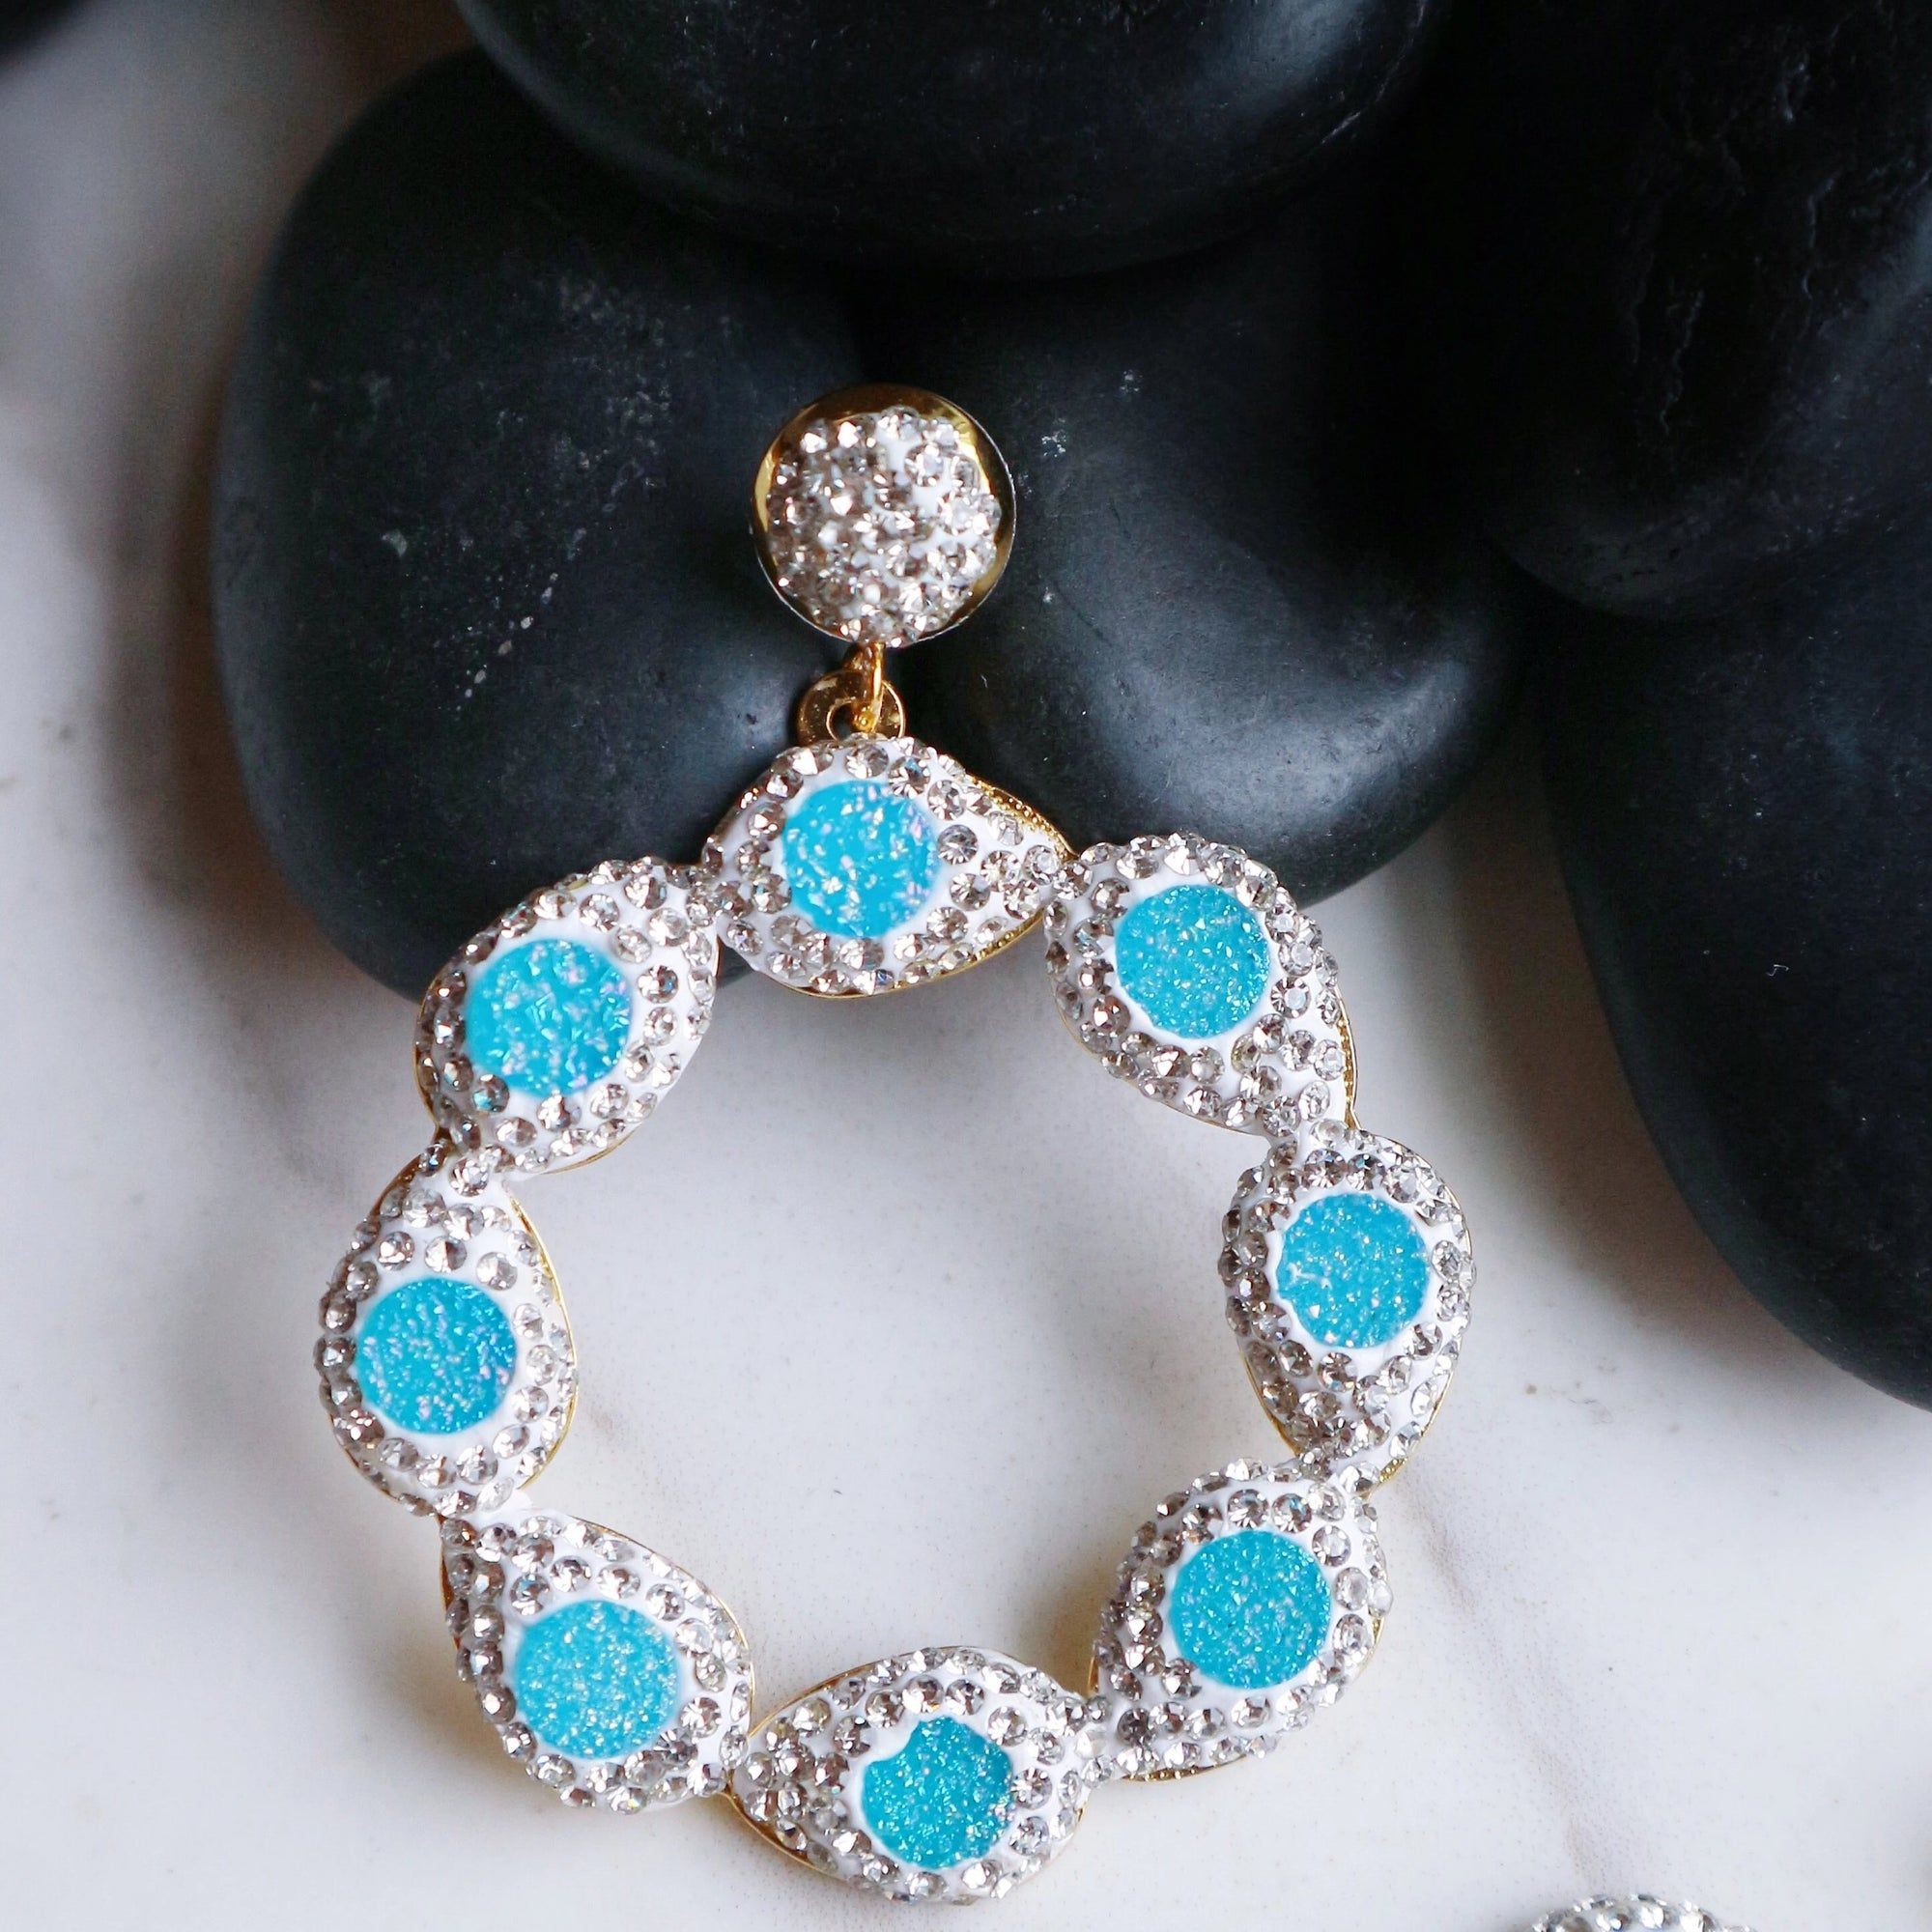 Sunset Earrings- Sparkling Blue - Statement jewellery by Radiant Riviera